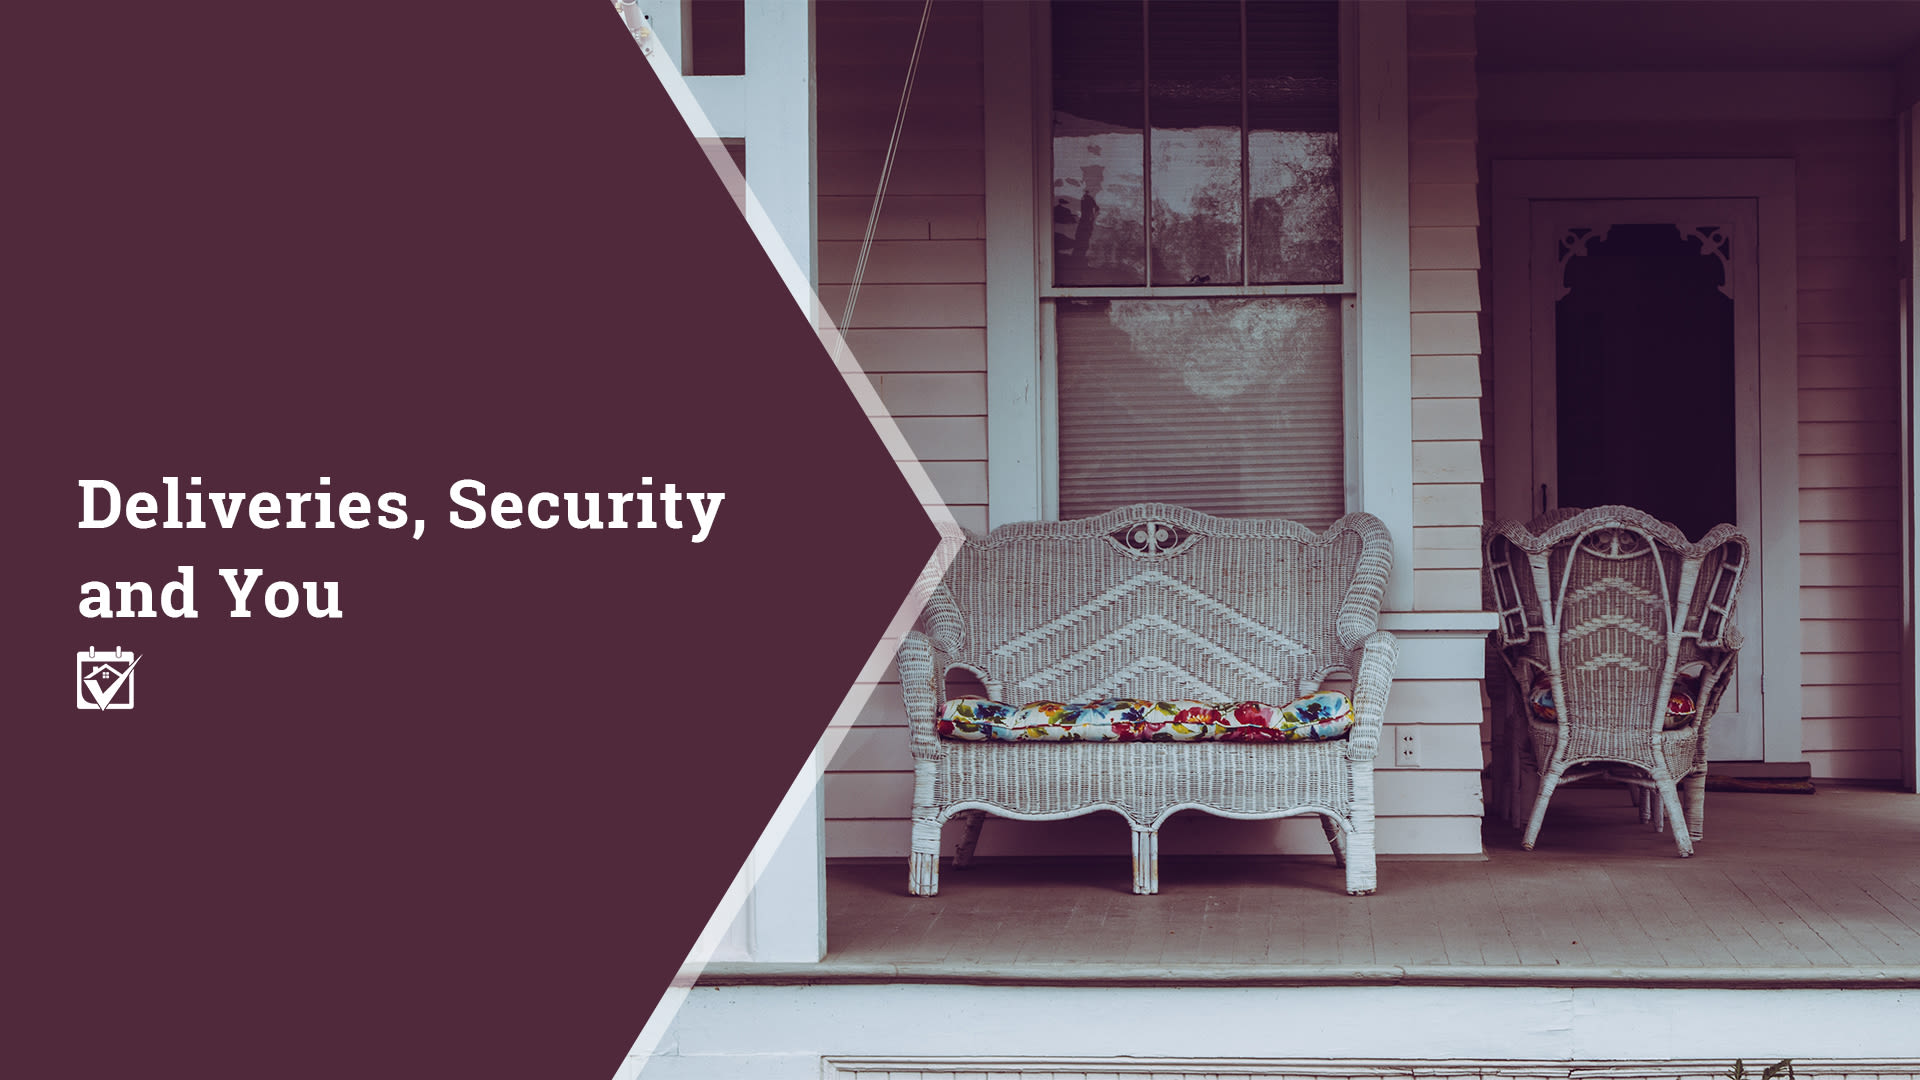 Deliveries, Security and You